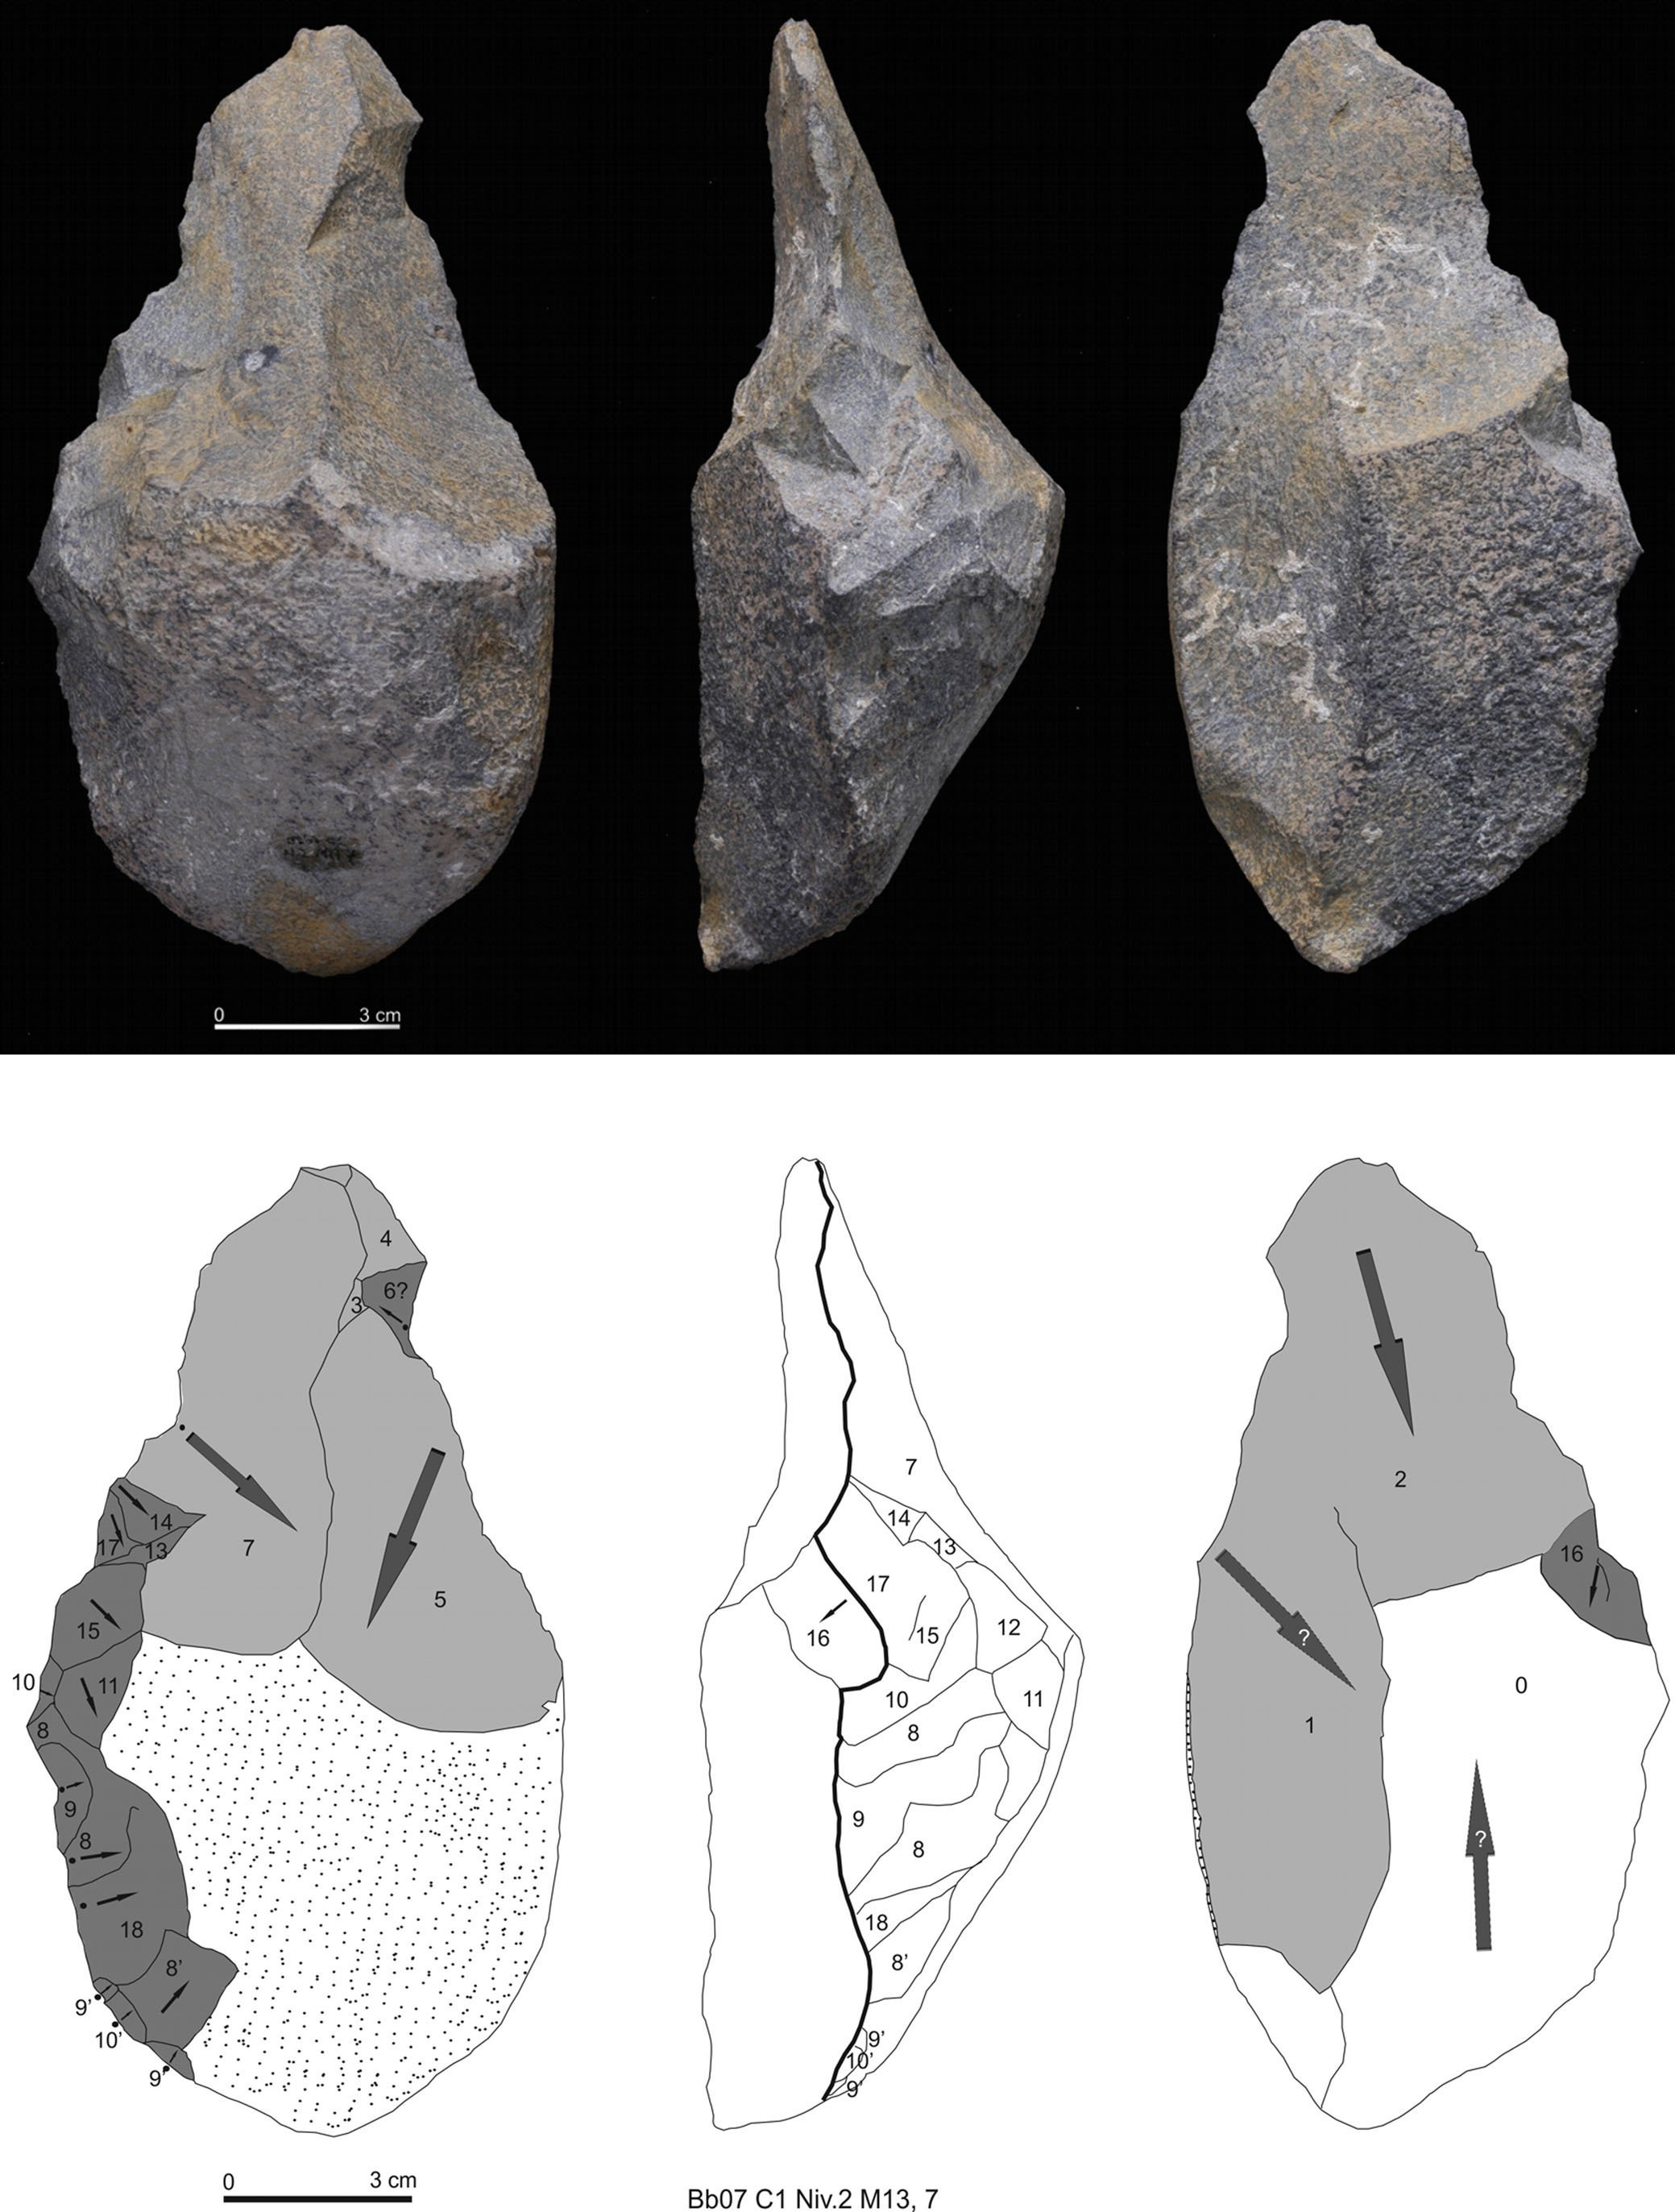 Schist pick from Barranc de la Boella, dating to Lower Palaeolithic, 0.96–0.78 Ma. Image from Mosquera et al. (2015) doi/10.1002/jqs.2800